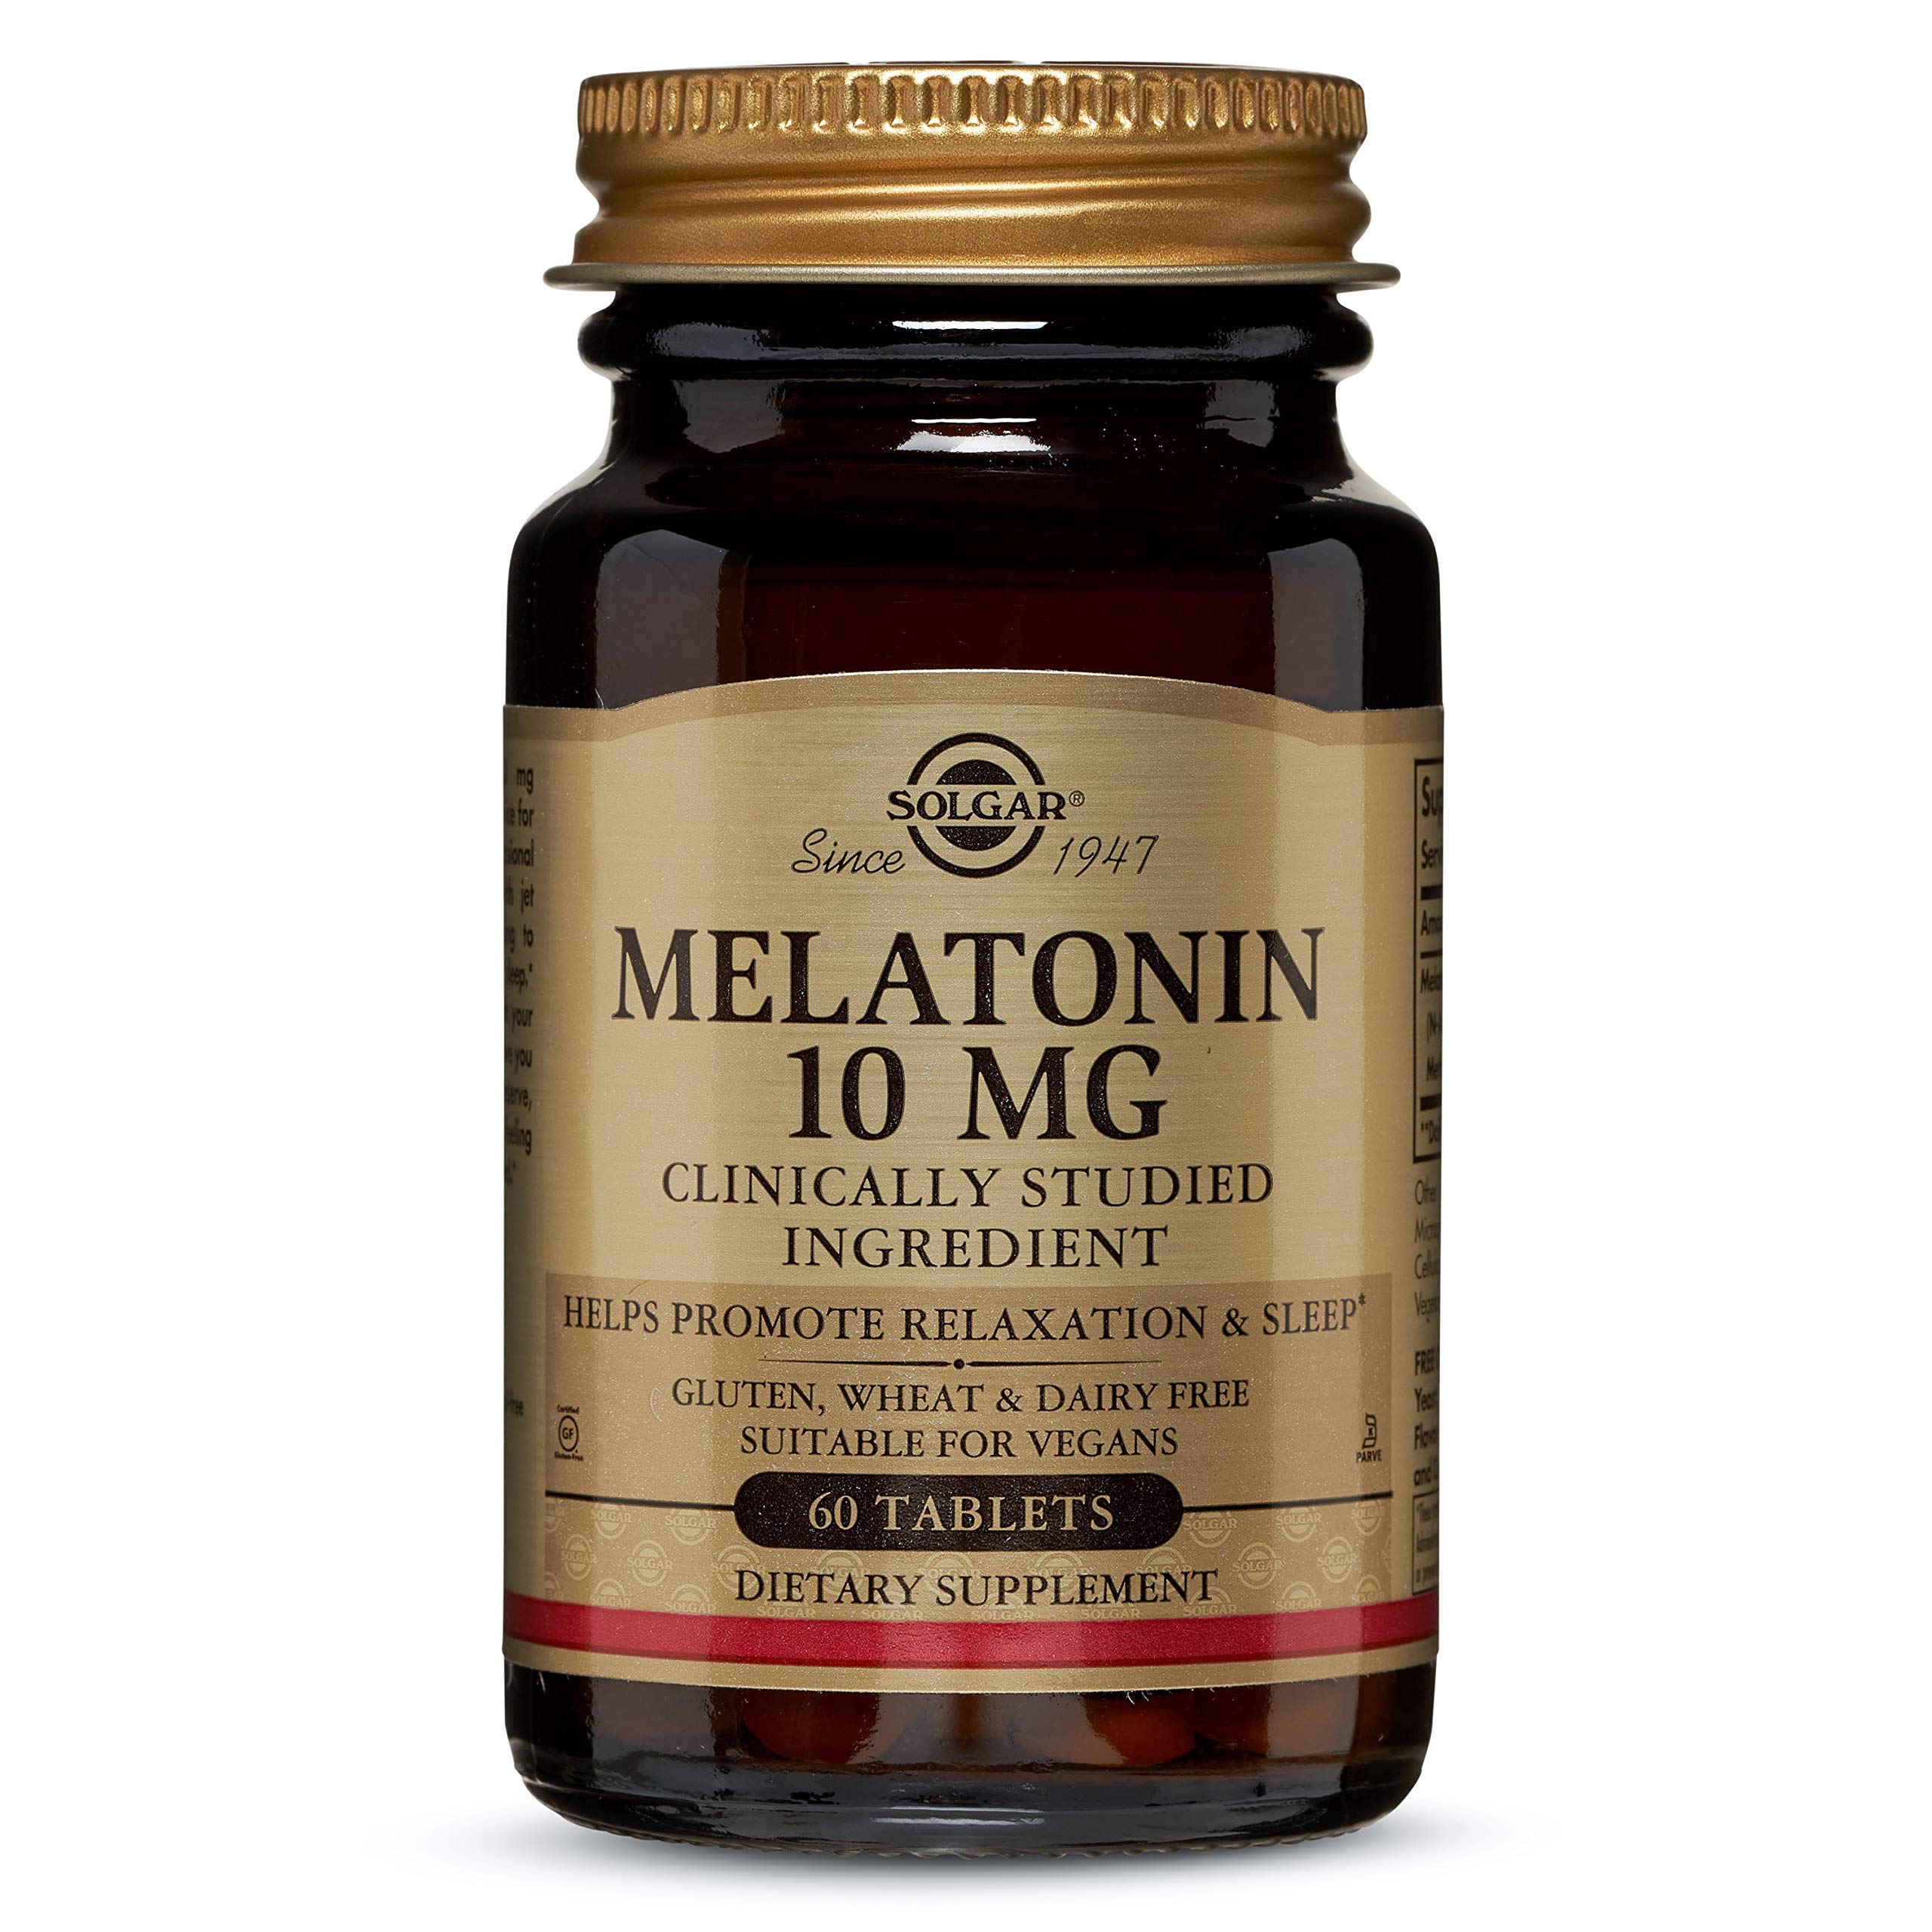 Solgar Melatonin 10 mg Clinically Studied Ingredient, Helps Promote Relaxation & Sleep, Suitable for